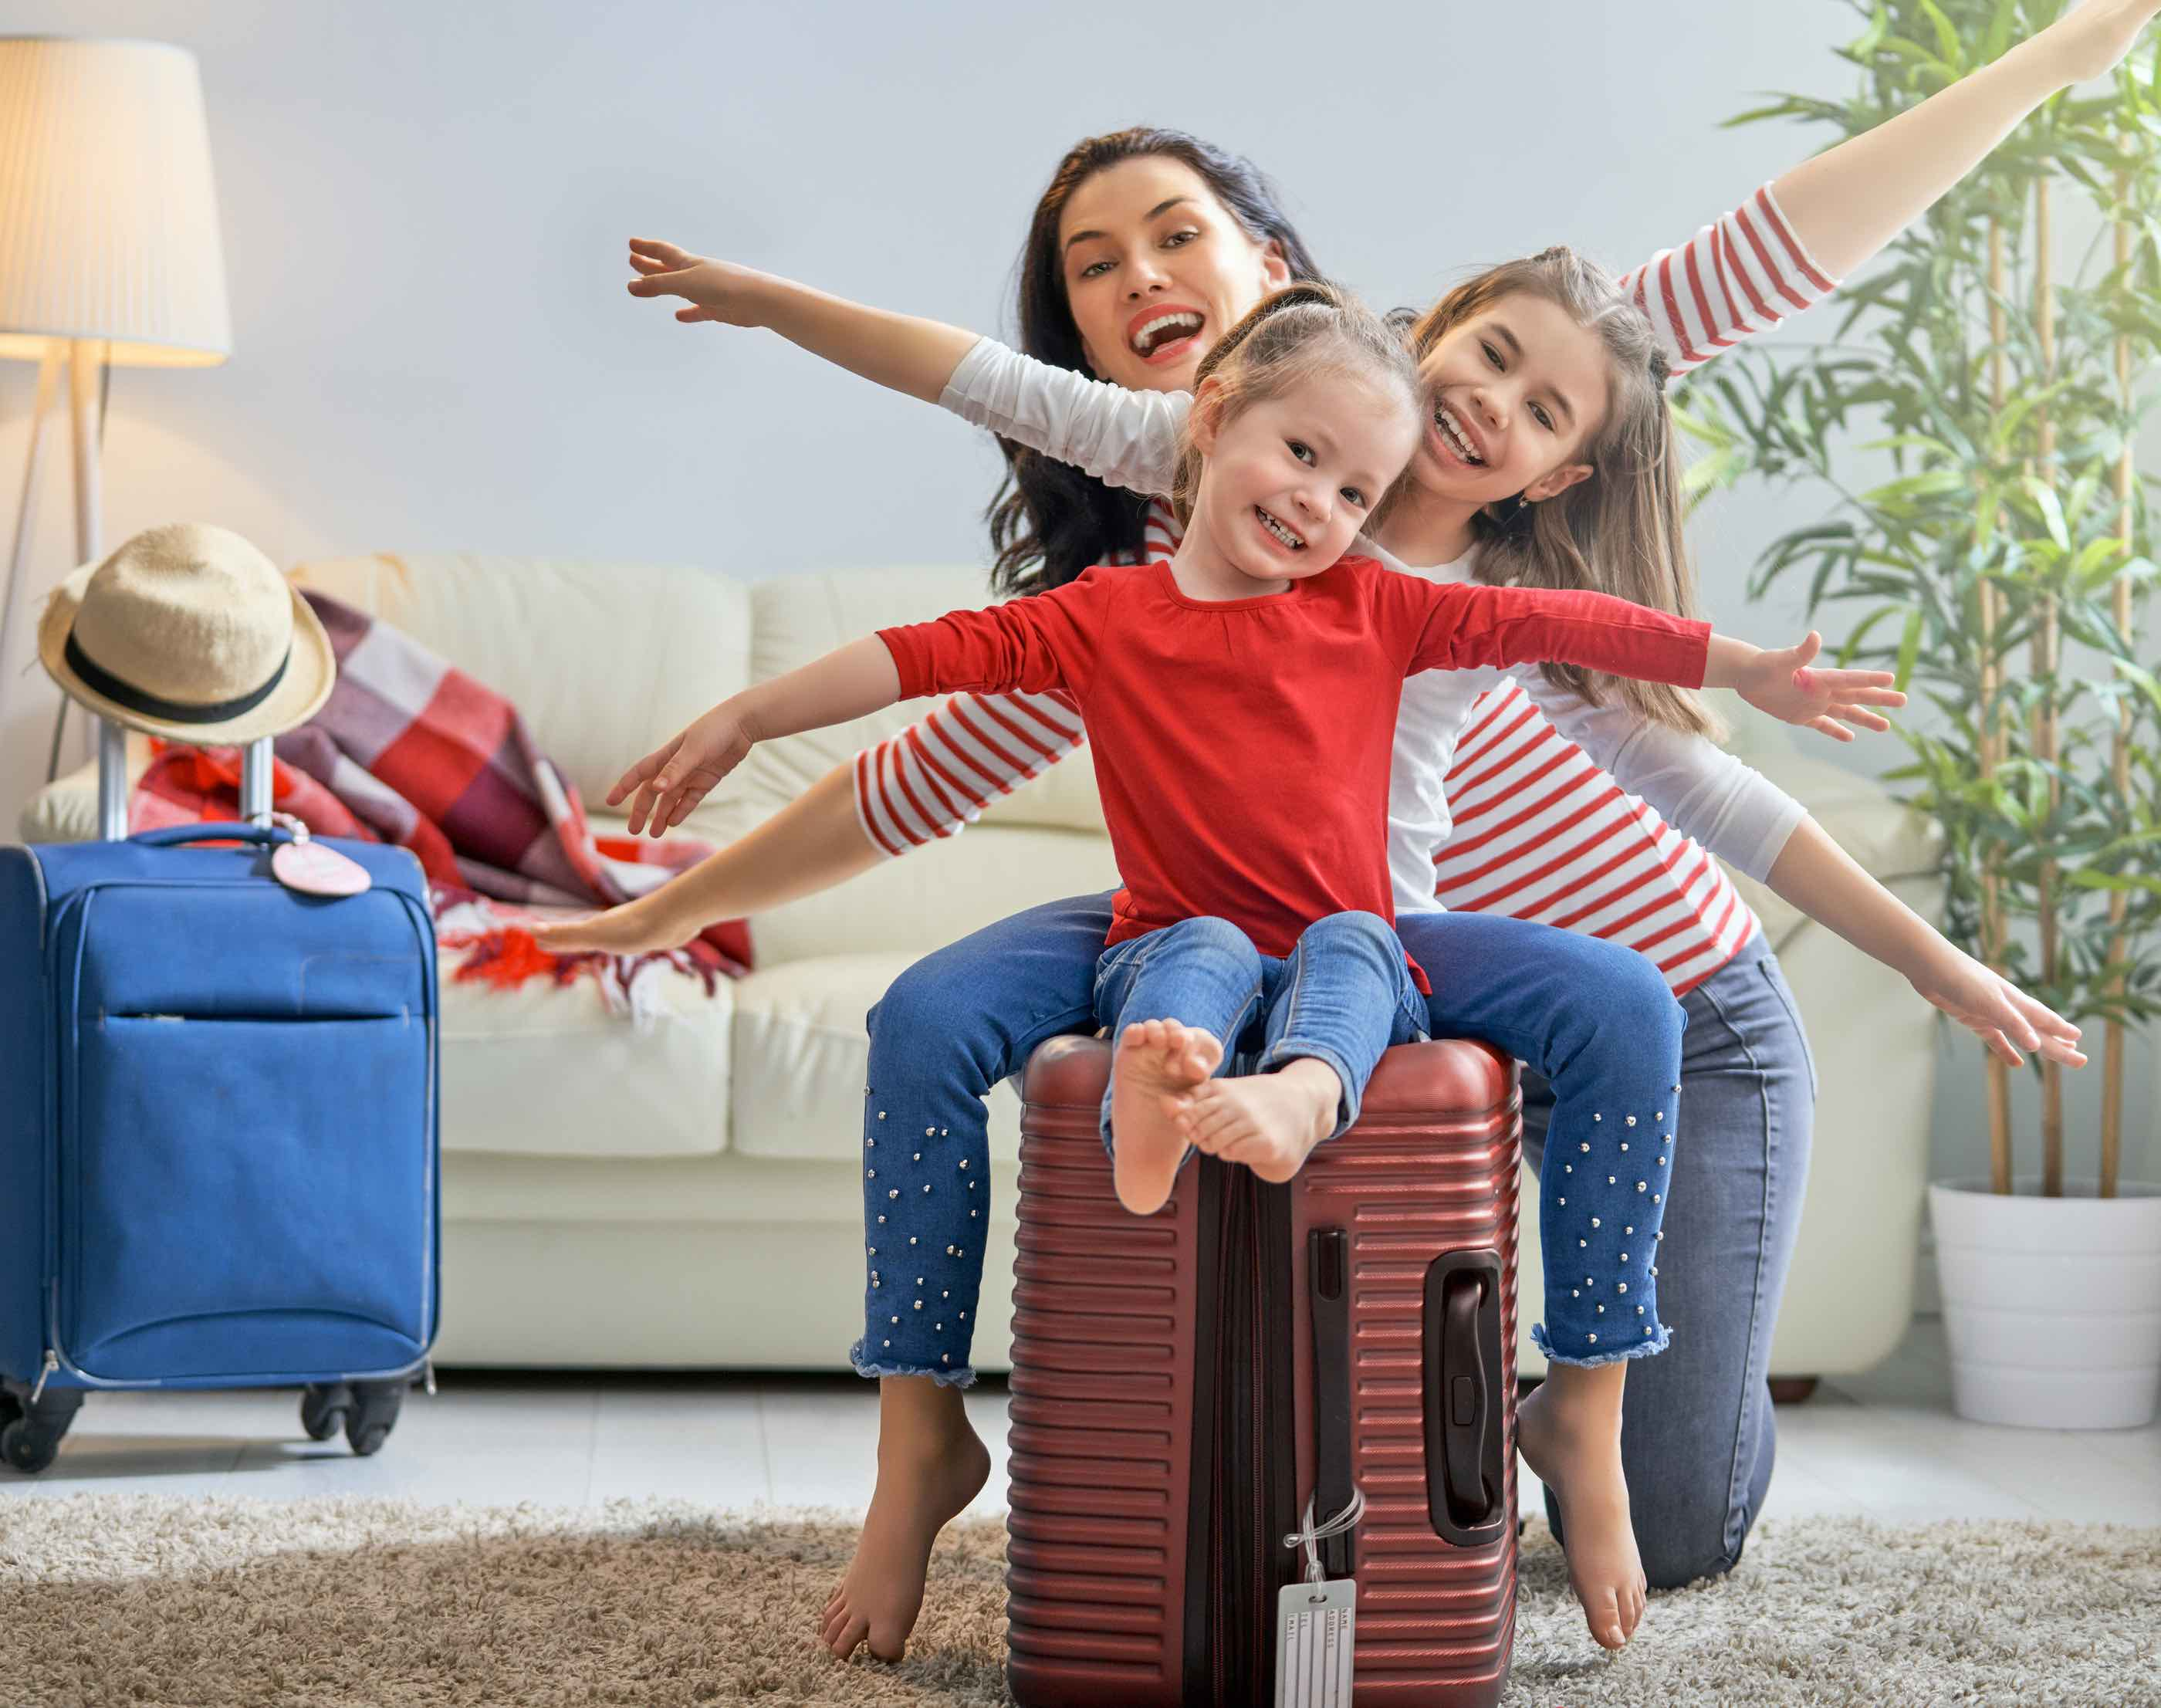 family-luggage-in-living-room-preparing-for-vacation-holidays